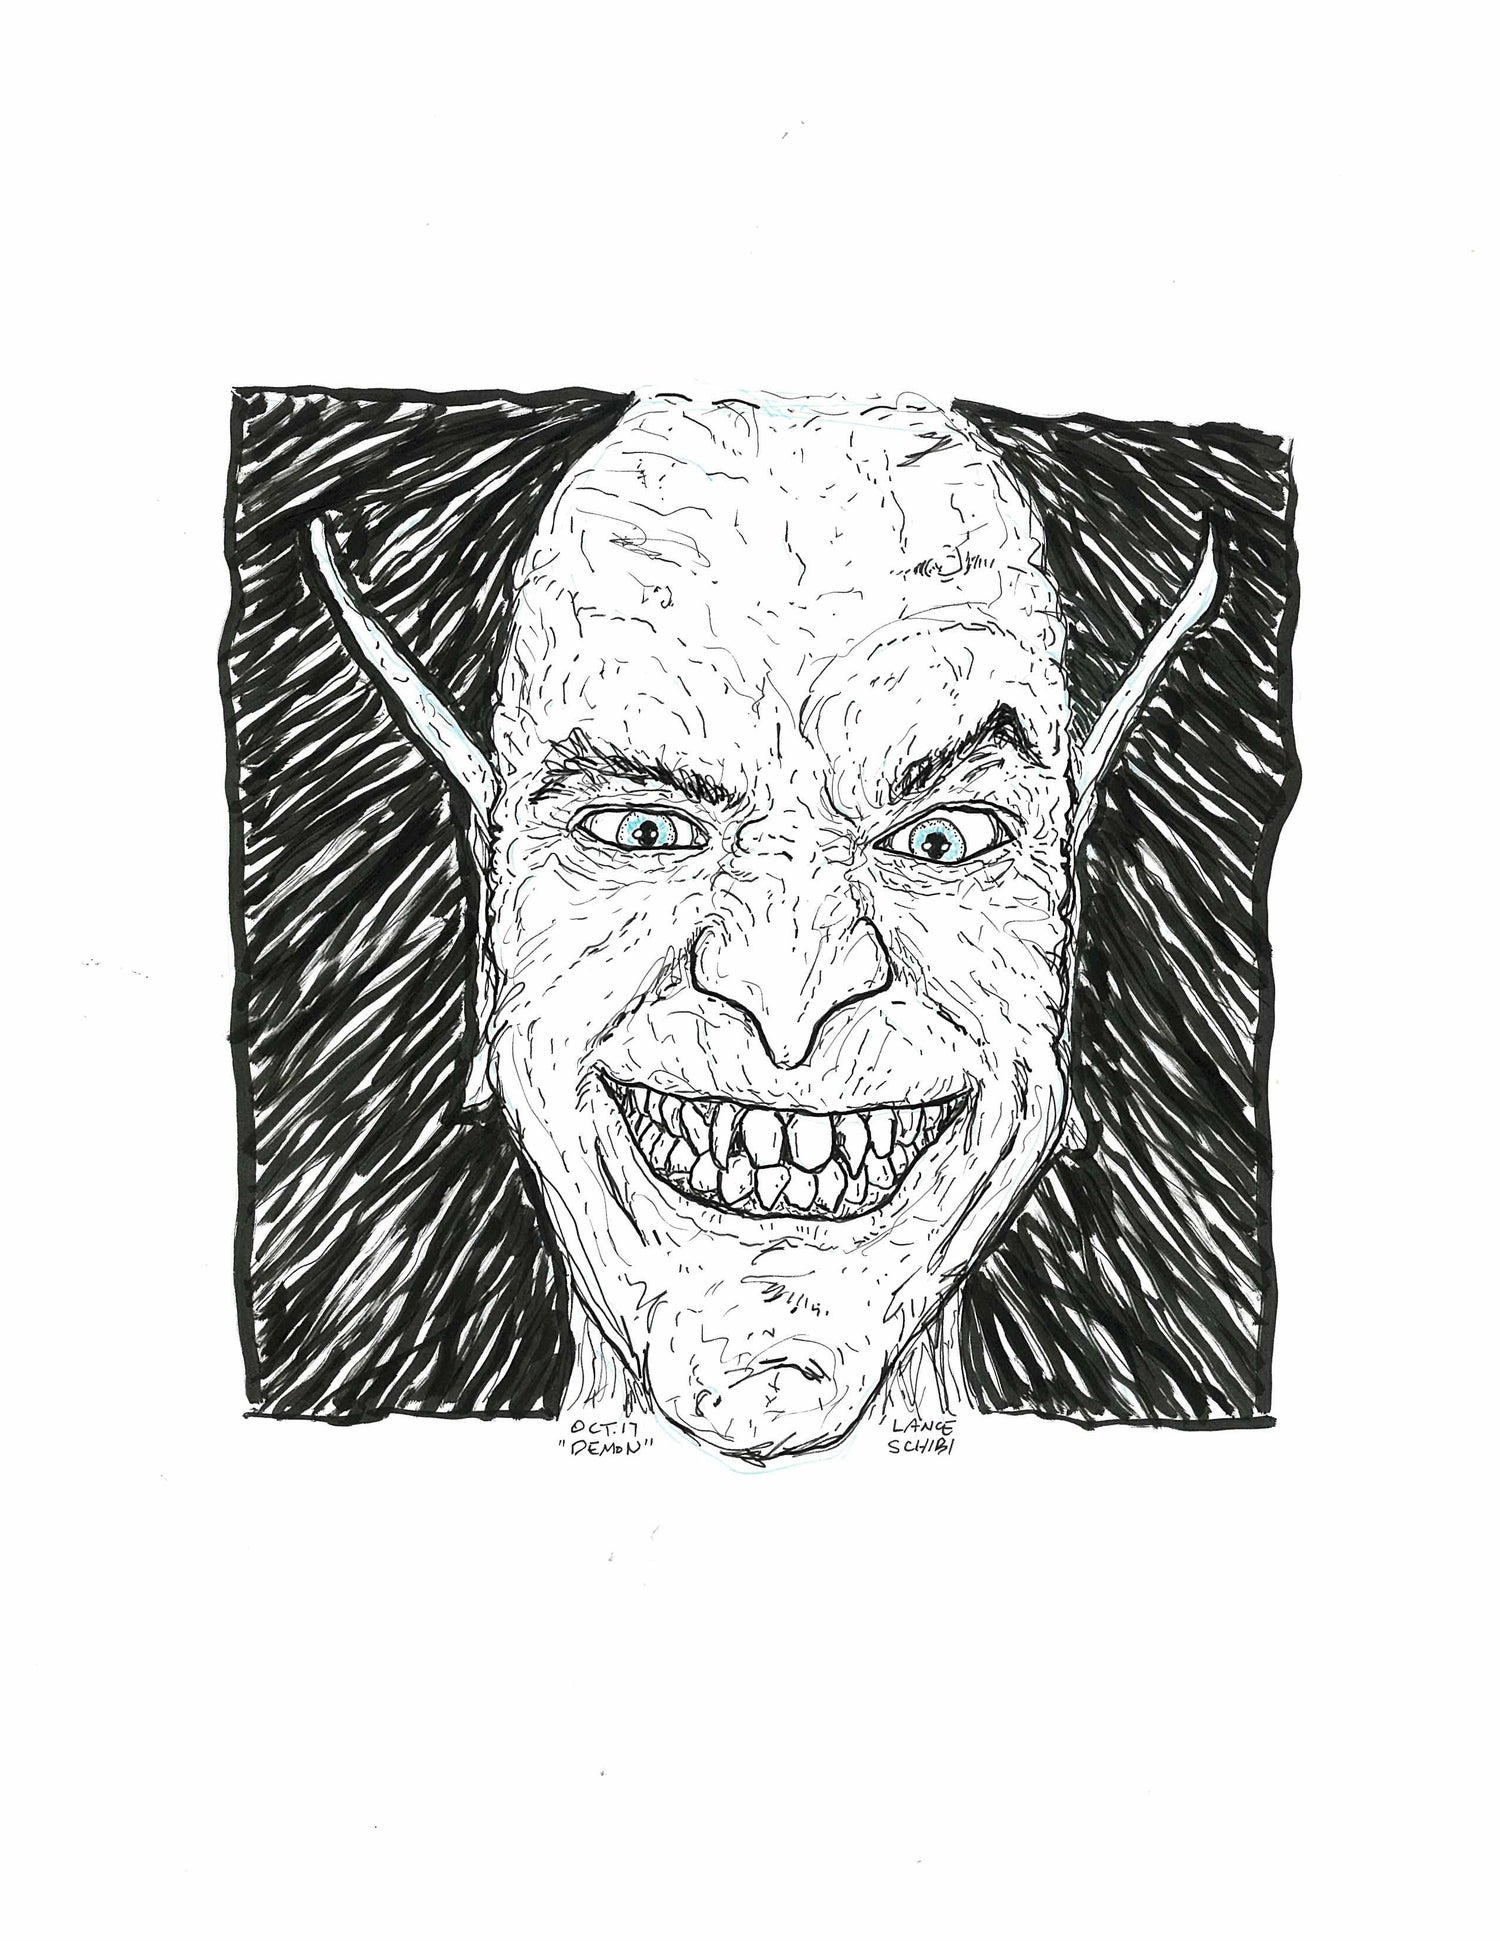 Image of DRAWLLOWEEN Day 17 Original: DEMON